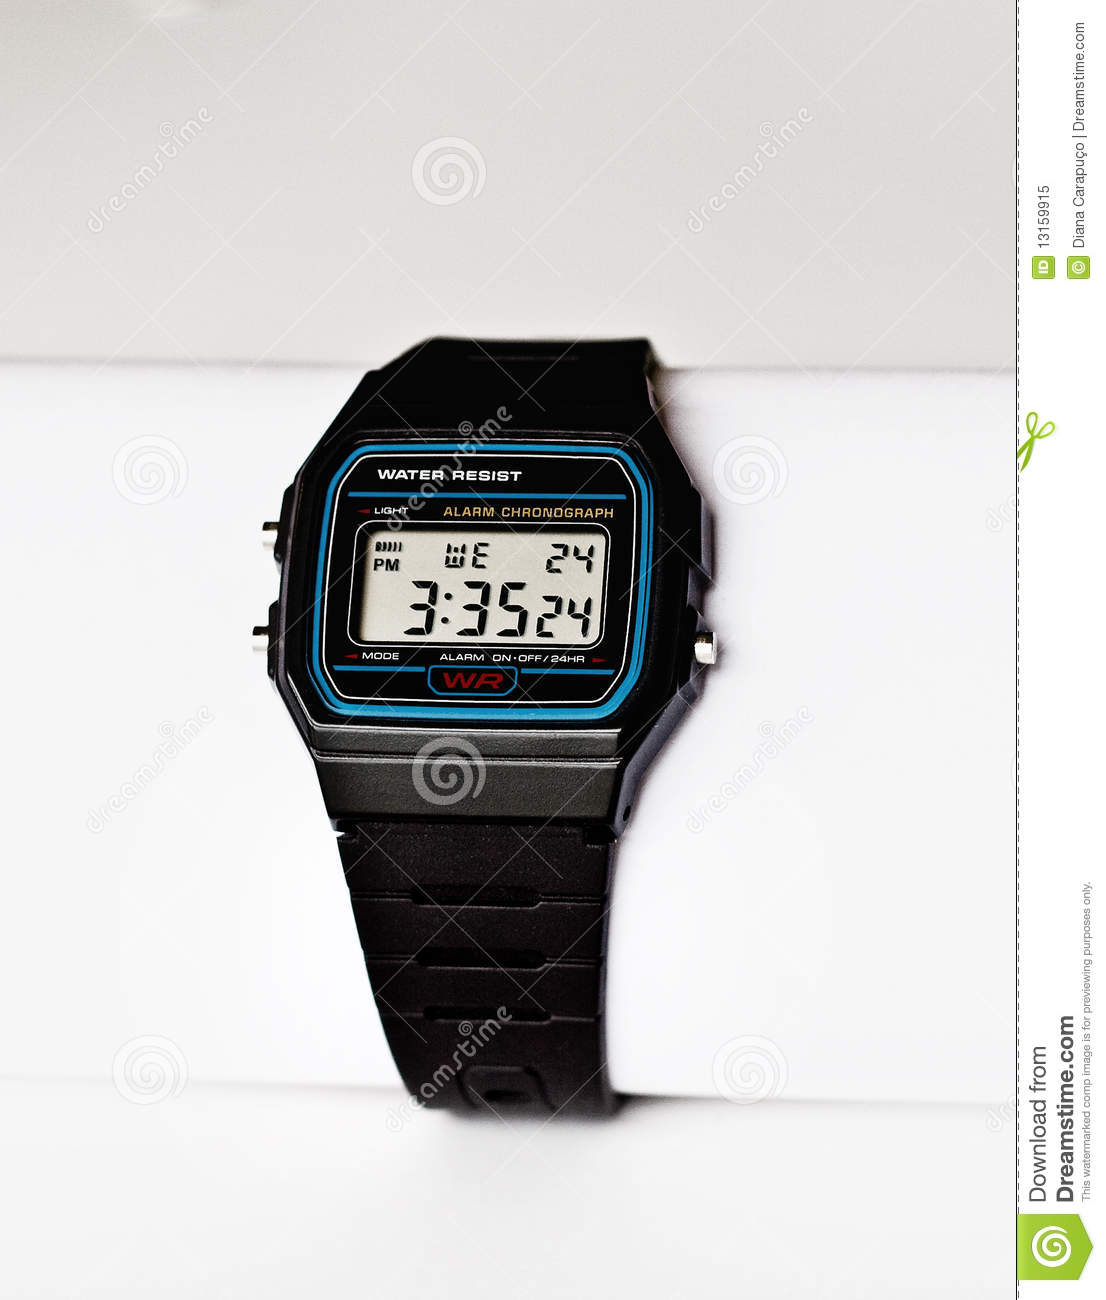 how to set time in digital watch